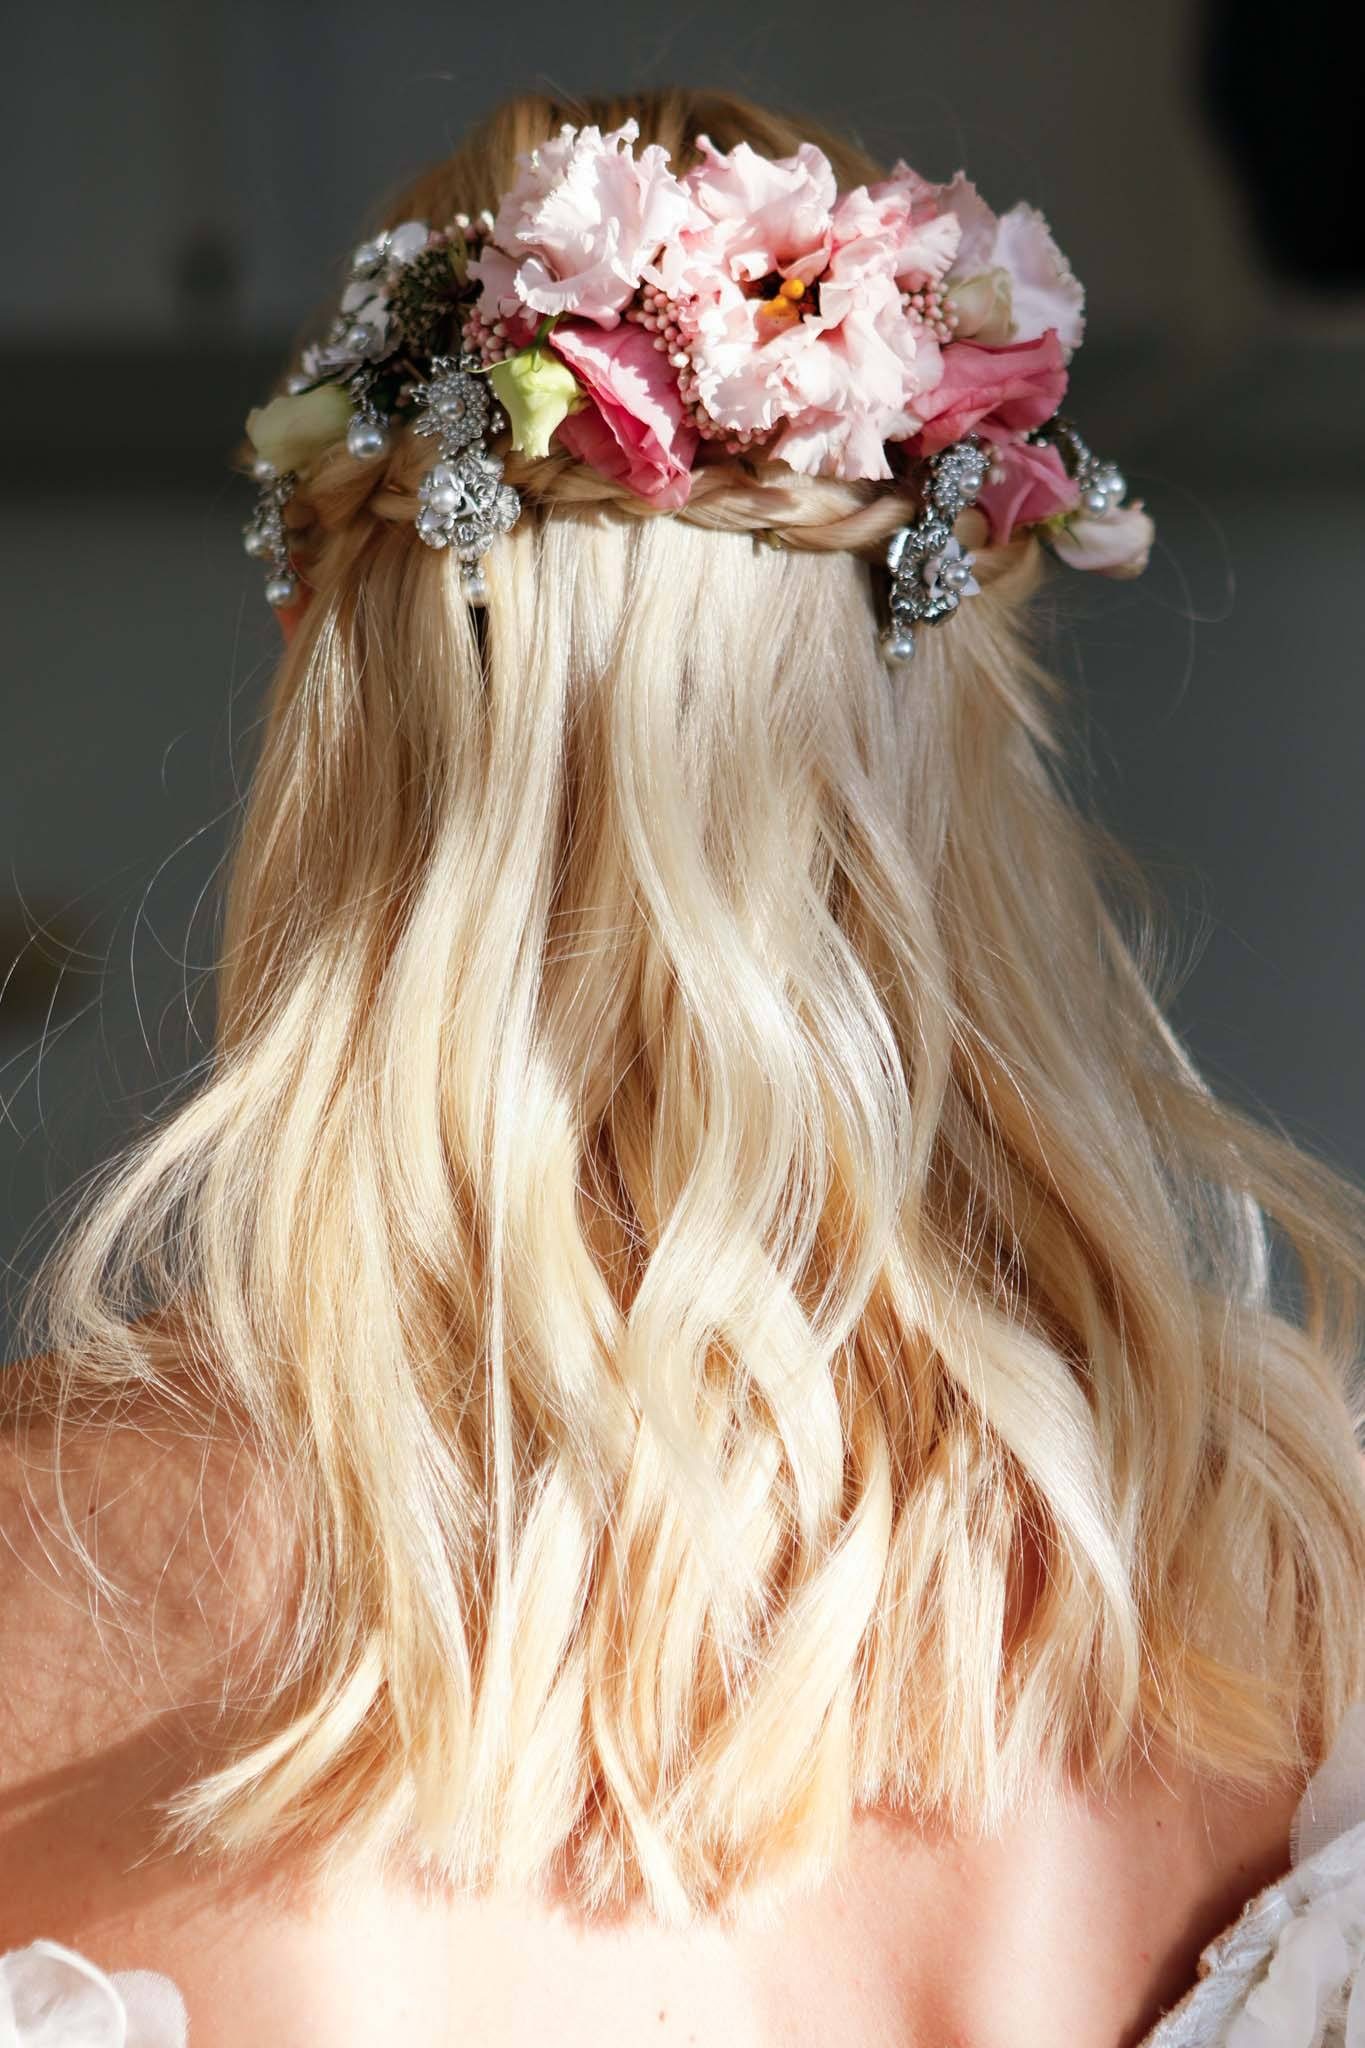 wedding hair flowers 5 dreamy looks from bridal fashion week. Black Bedroom Furniture Sets. Home Design Ideas